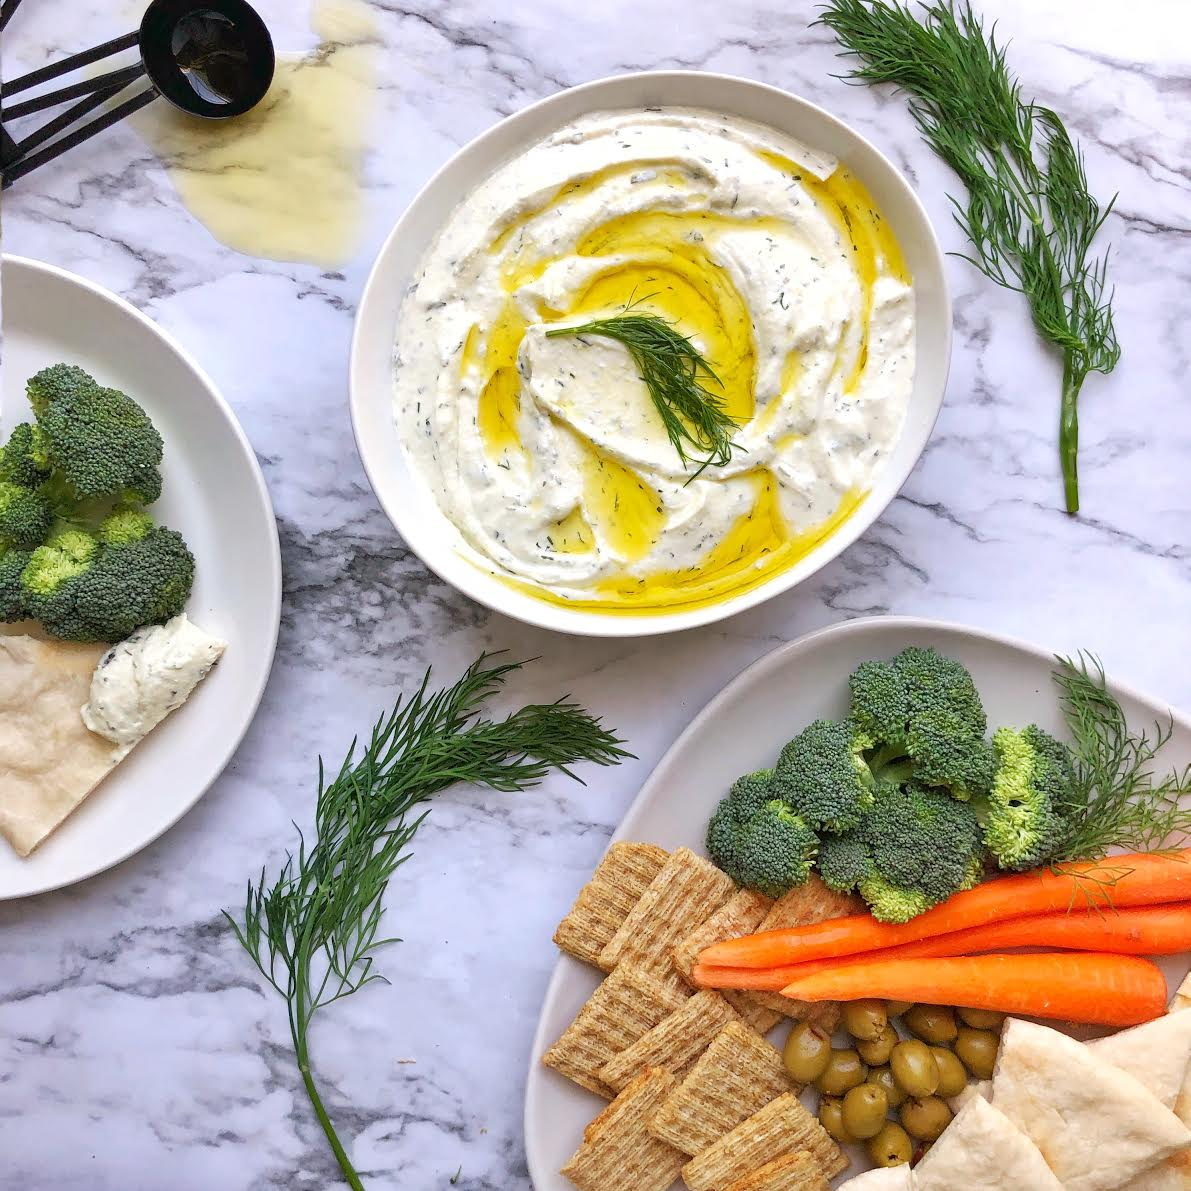 Dill and mint feta dip. (Dylan Simmons)